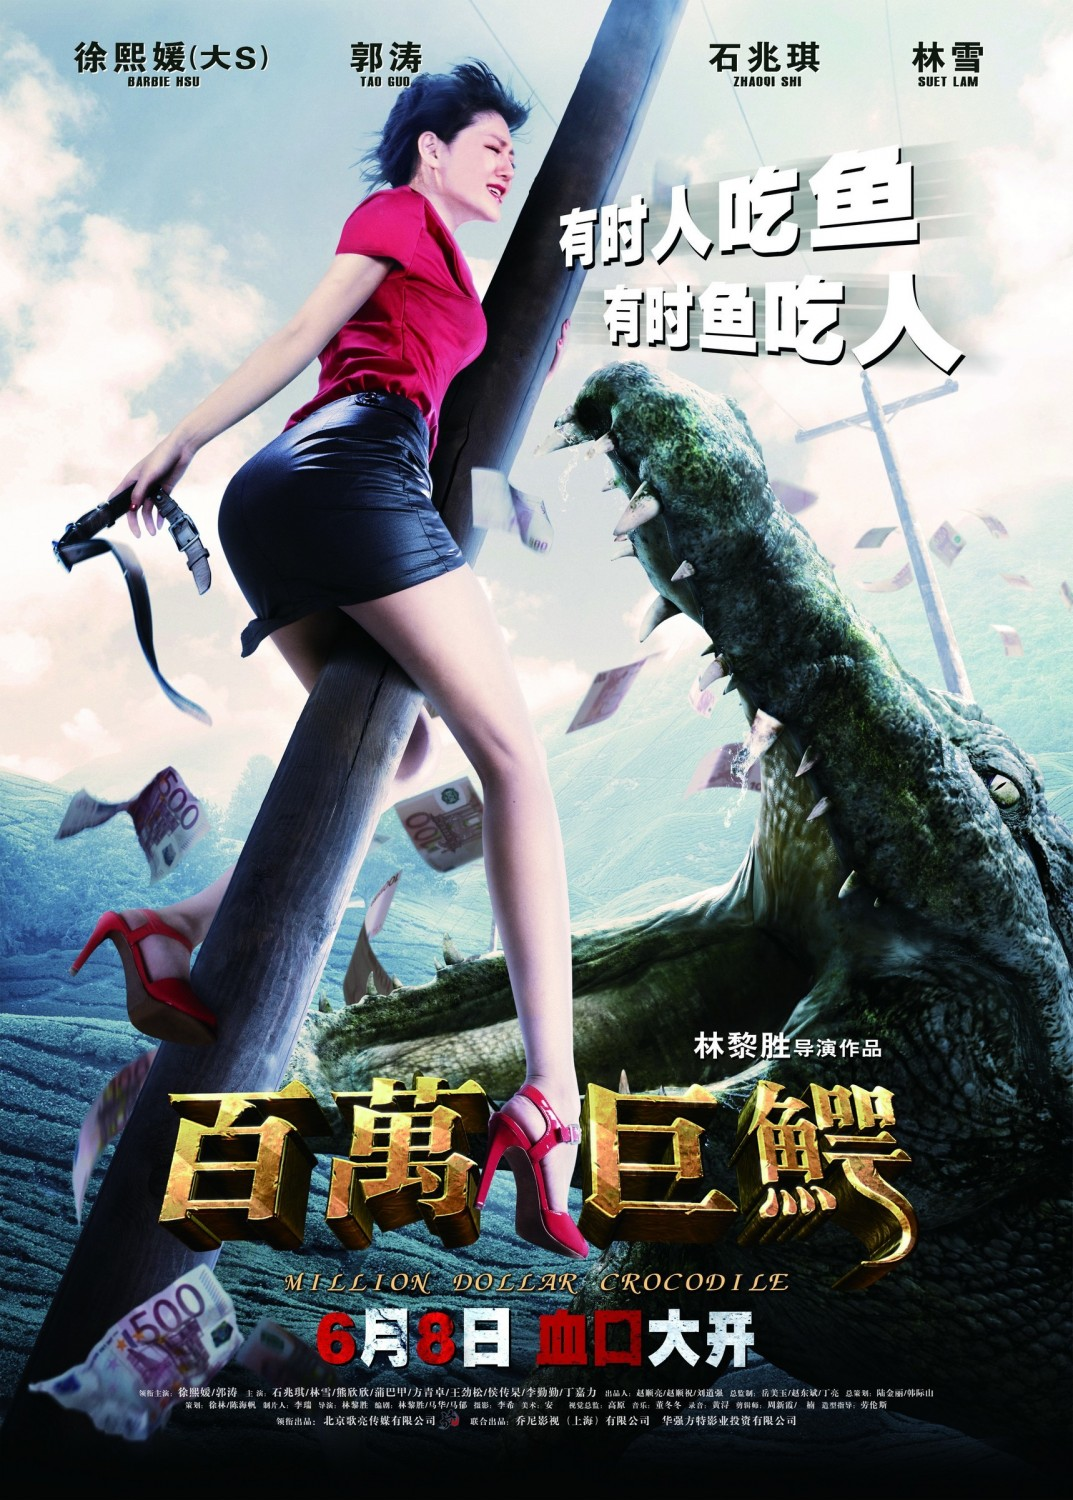 million_dollar_crocodile_poster_2012_01.jpg